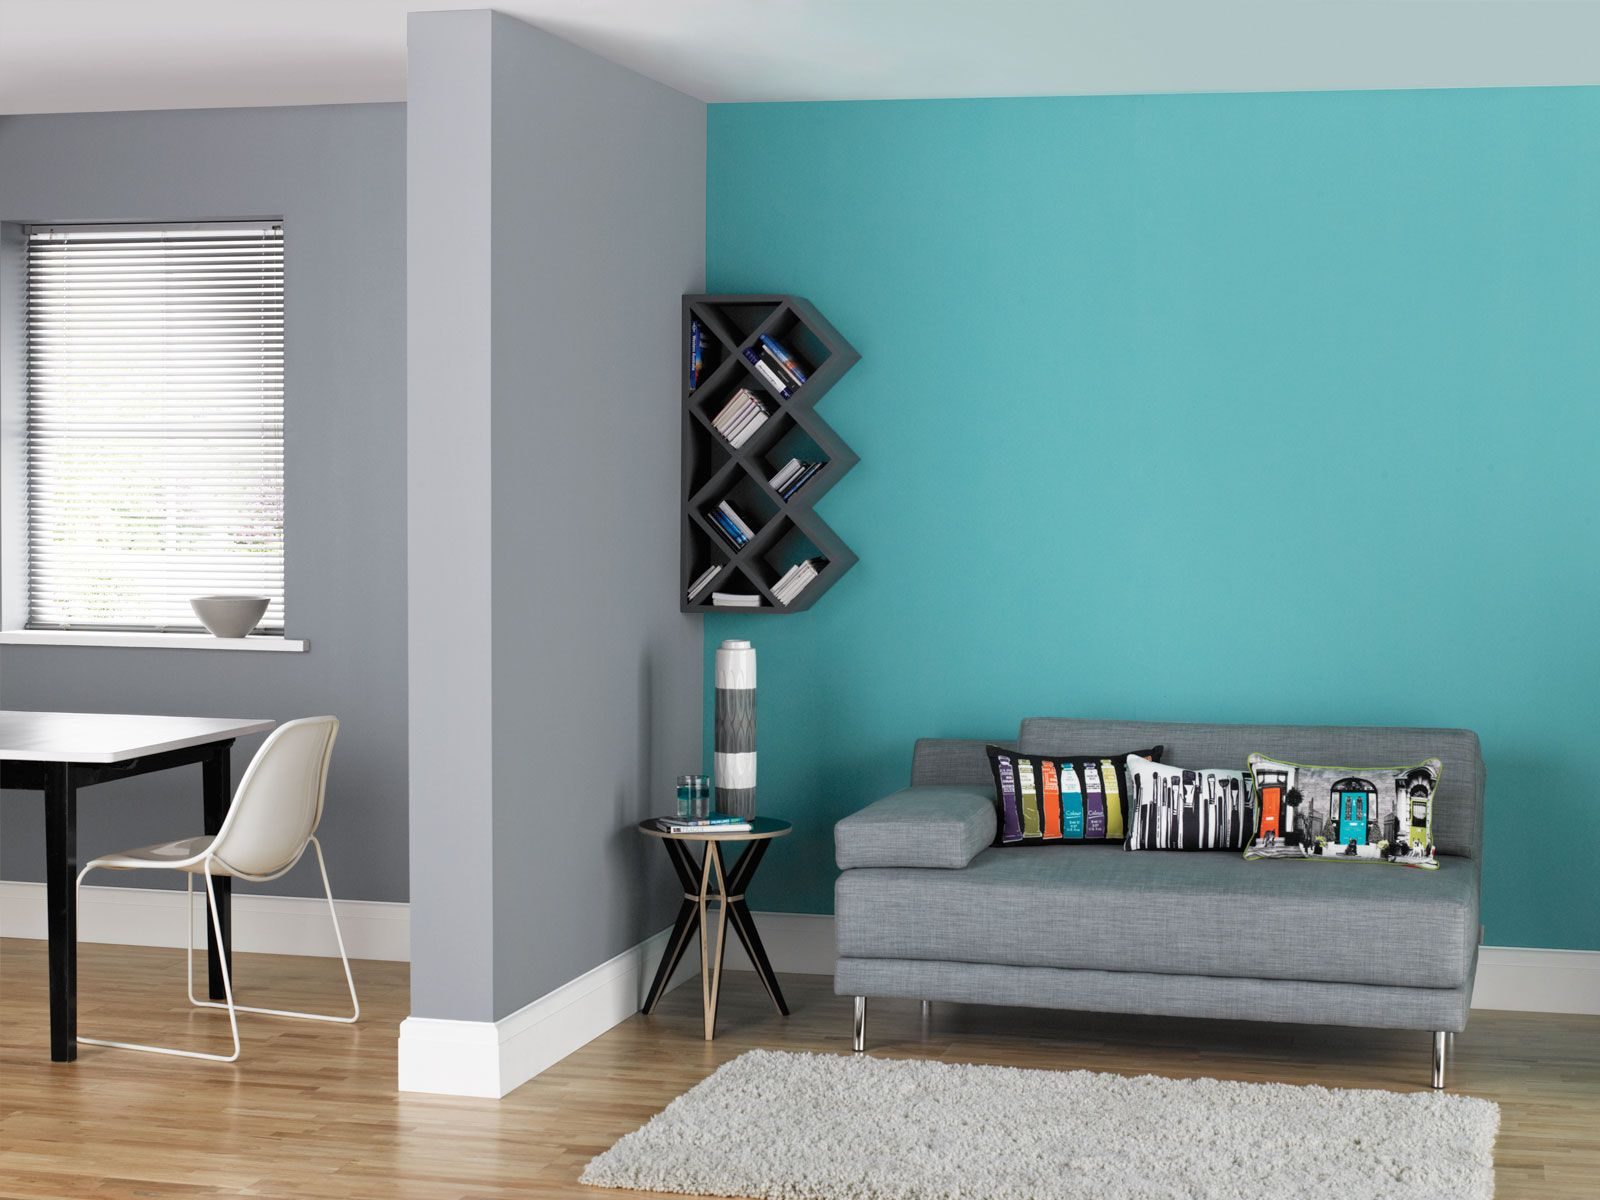 Turquoise Wall Paint Team Griege Colours With Bright Features For A Truly Wonderful